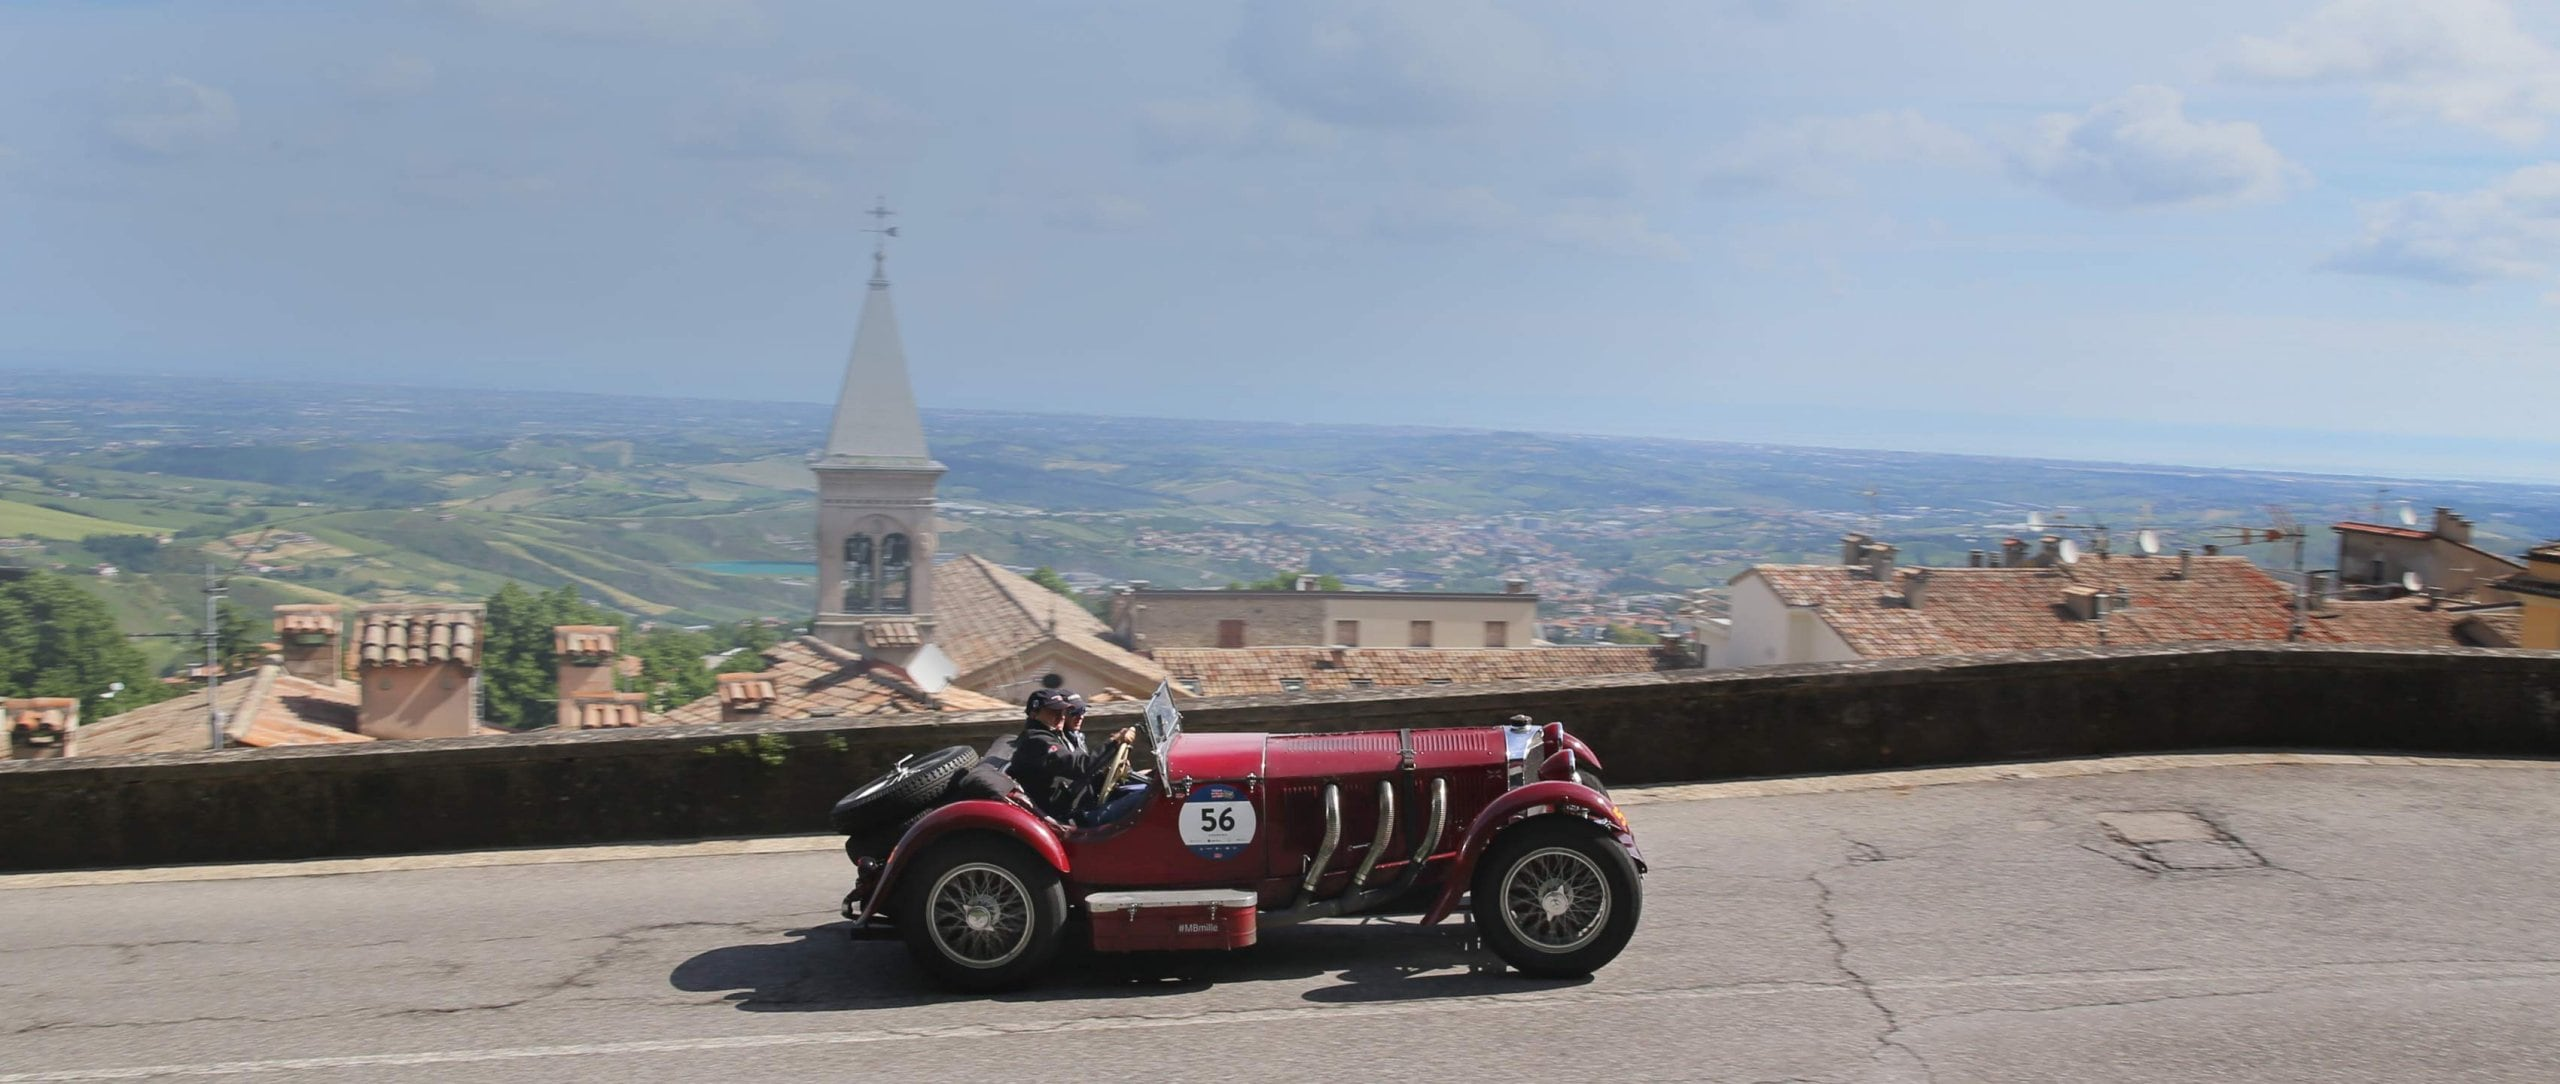 The classic vehicles, like this Mercedes-Benz SSK, are not the only spectacular sights worth seeing in the Mille Miglia.